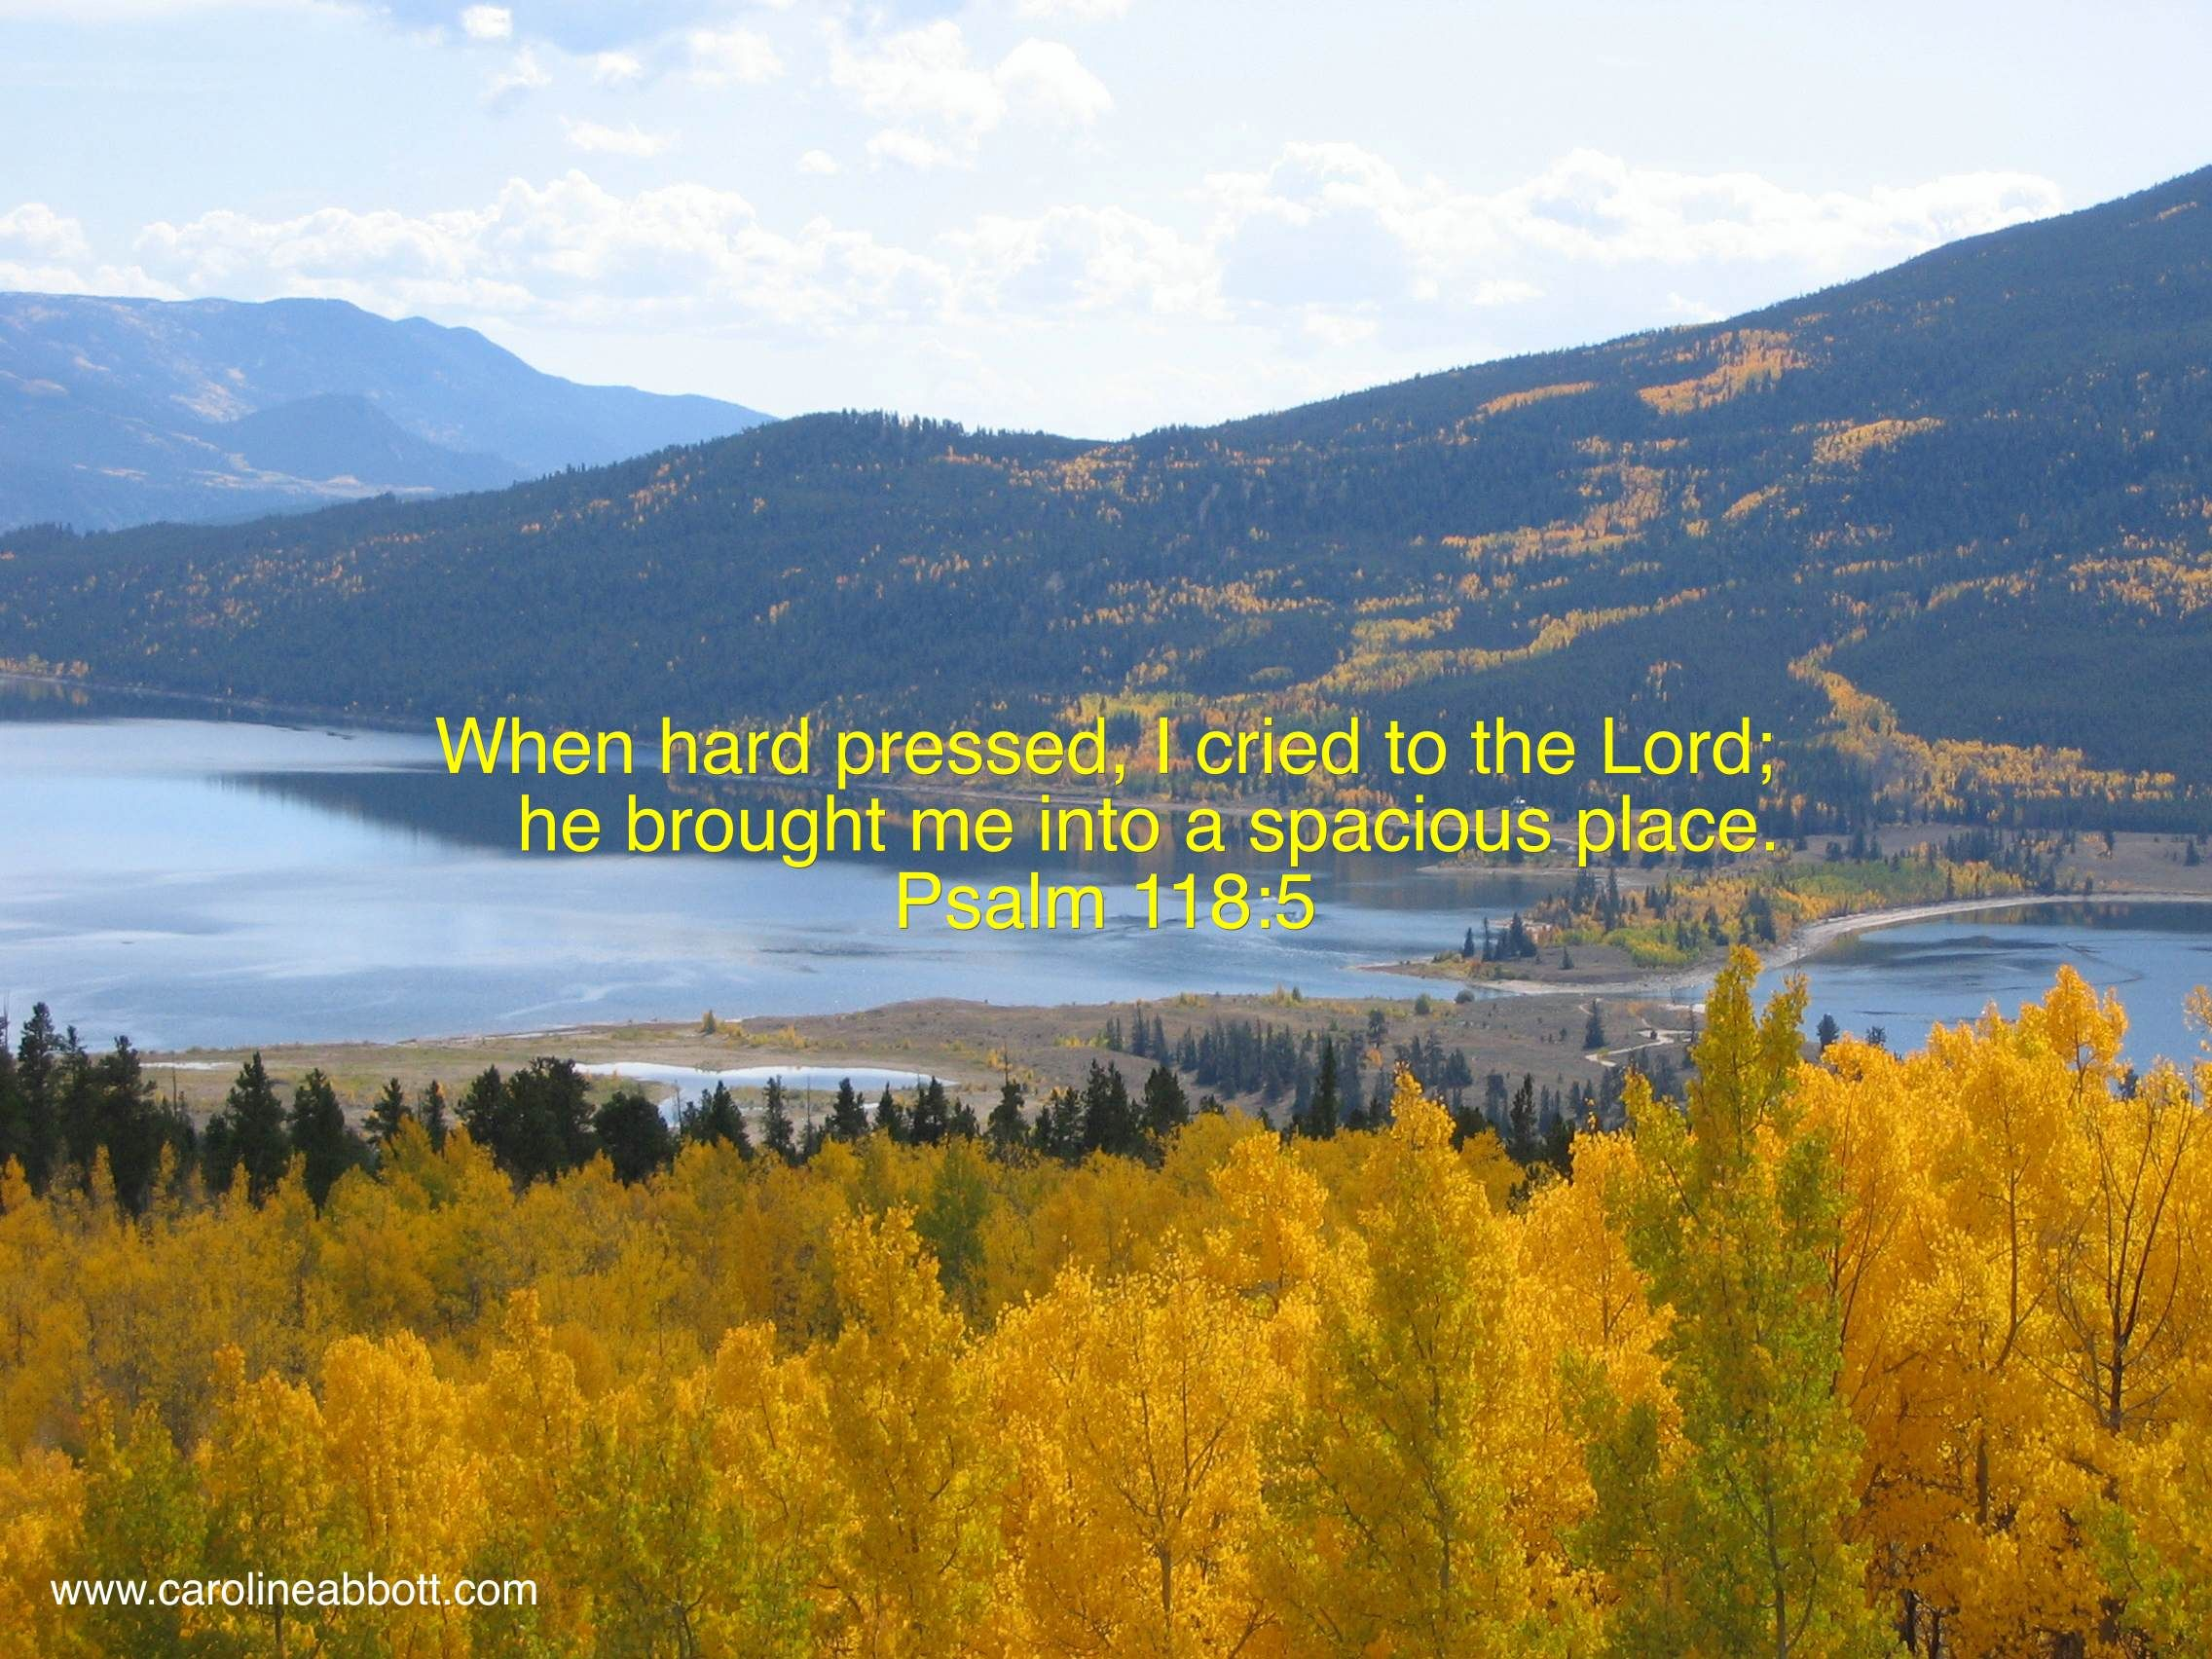 When hard pressed, I cried to the Lord, He brought me to a spacious place. Psalm 118:5